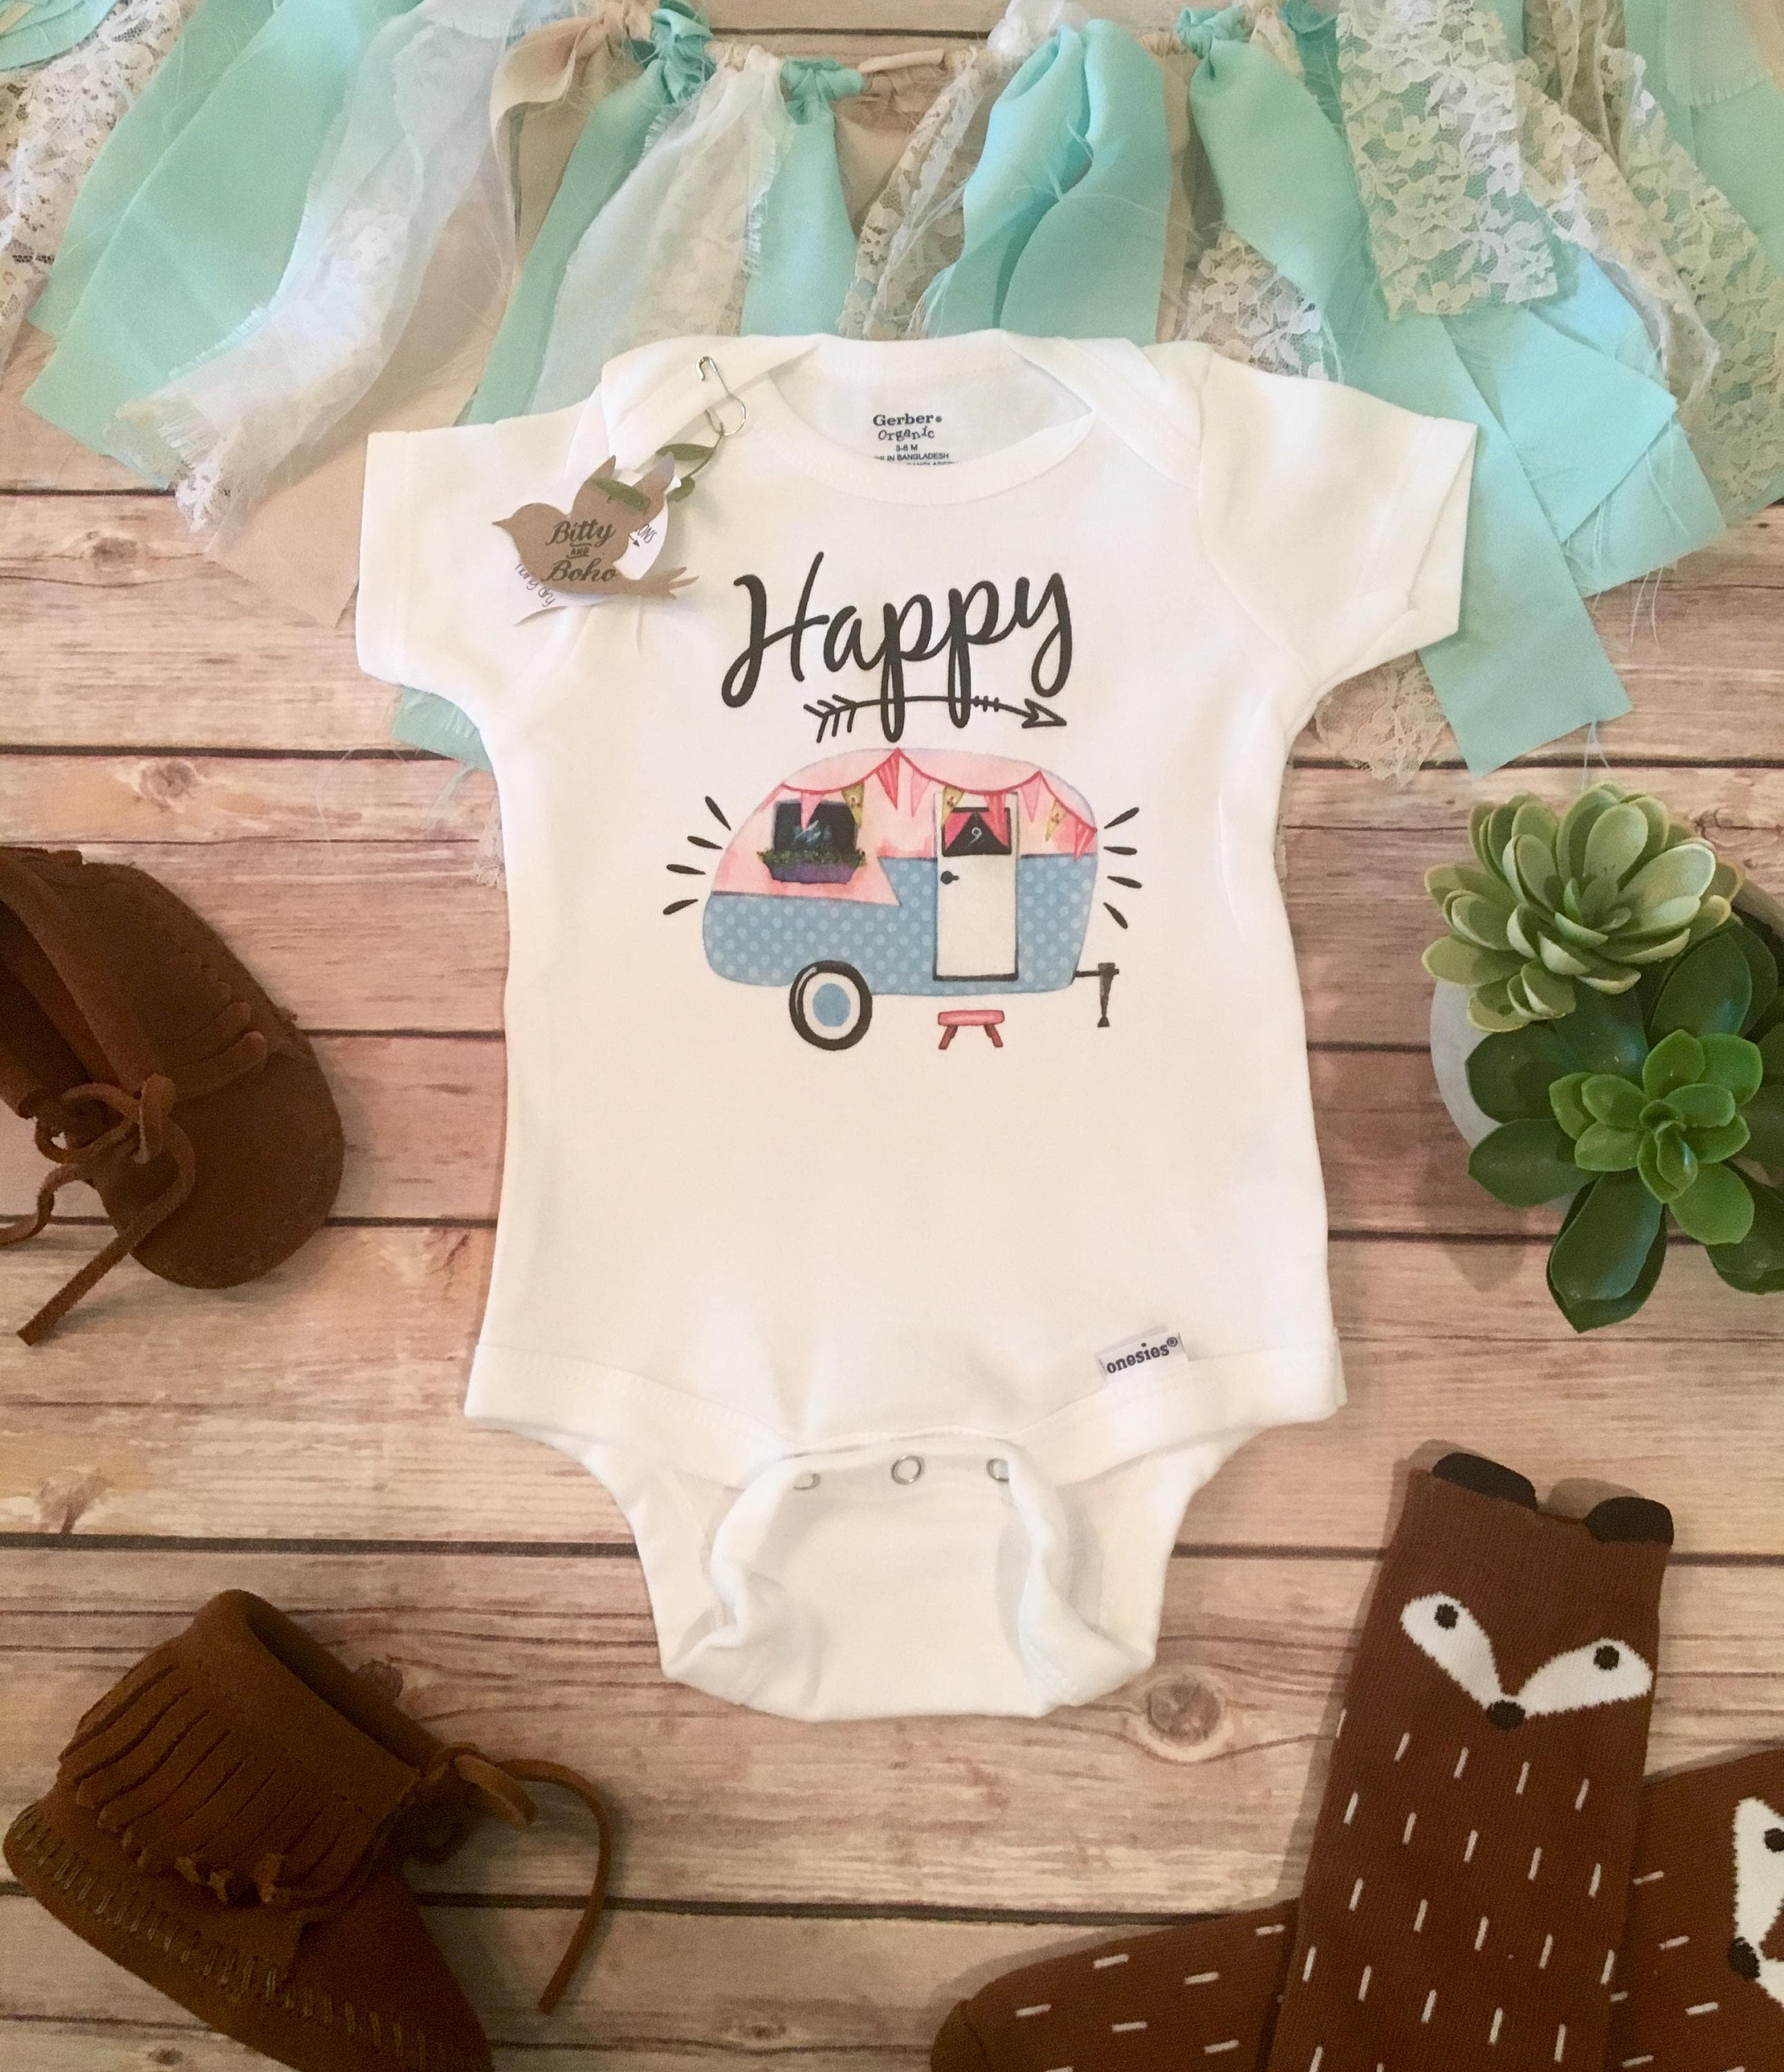 Phpmyadmin2016 - Hippie Baby Clothes Happy Camper Onesie Baby Girl Clothes Baby Shower Gift Boho Baby Clothes